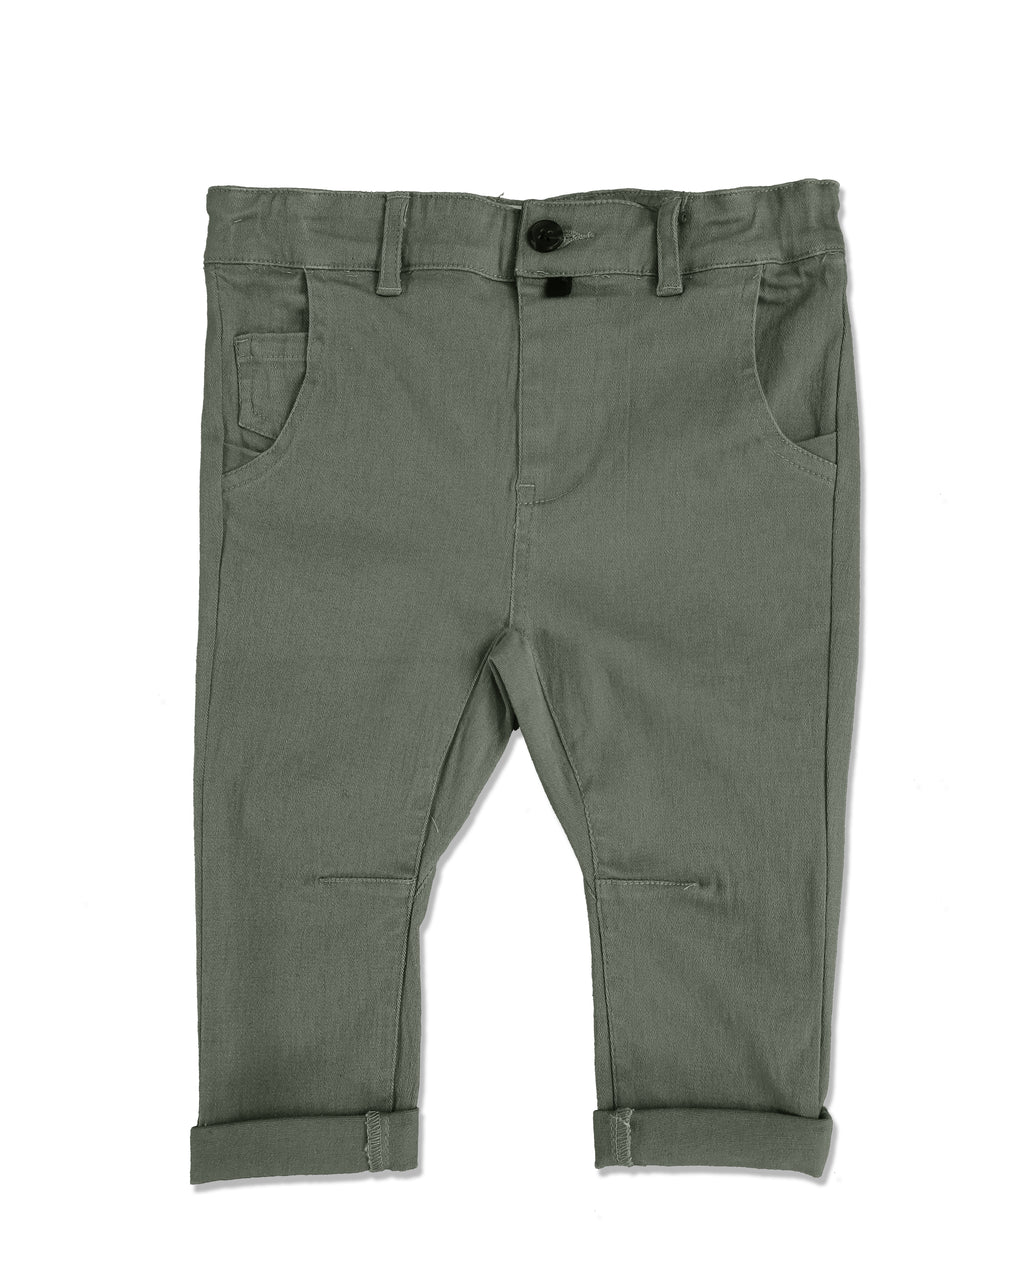 front image of olive woven pants for baby boy